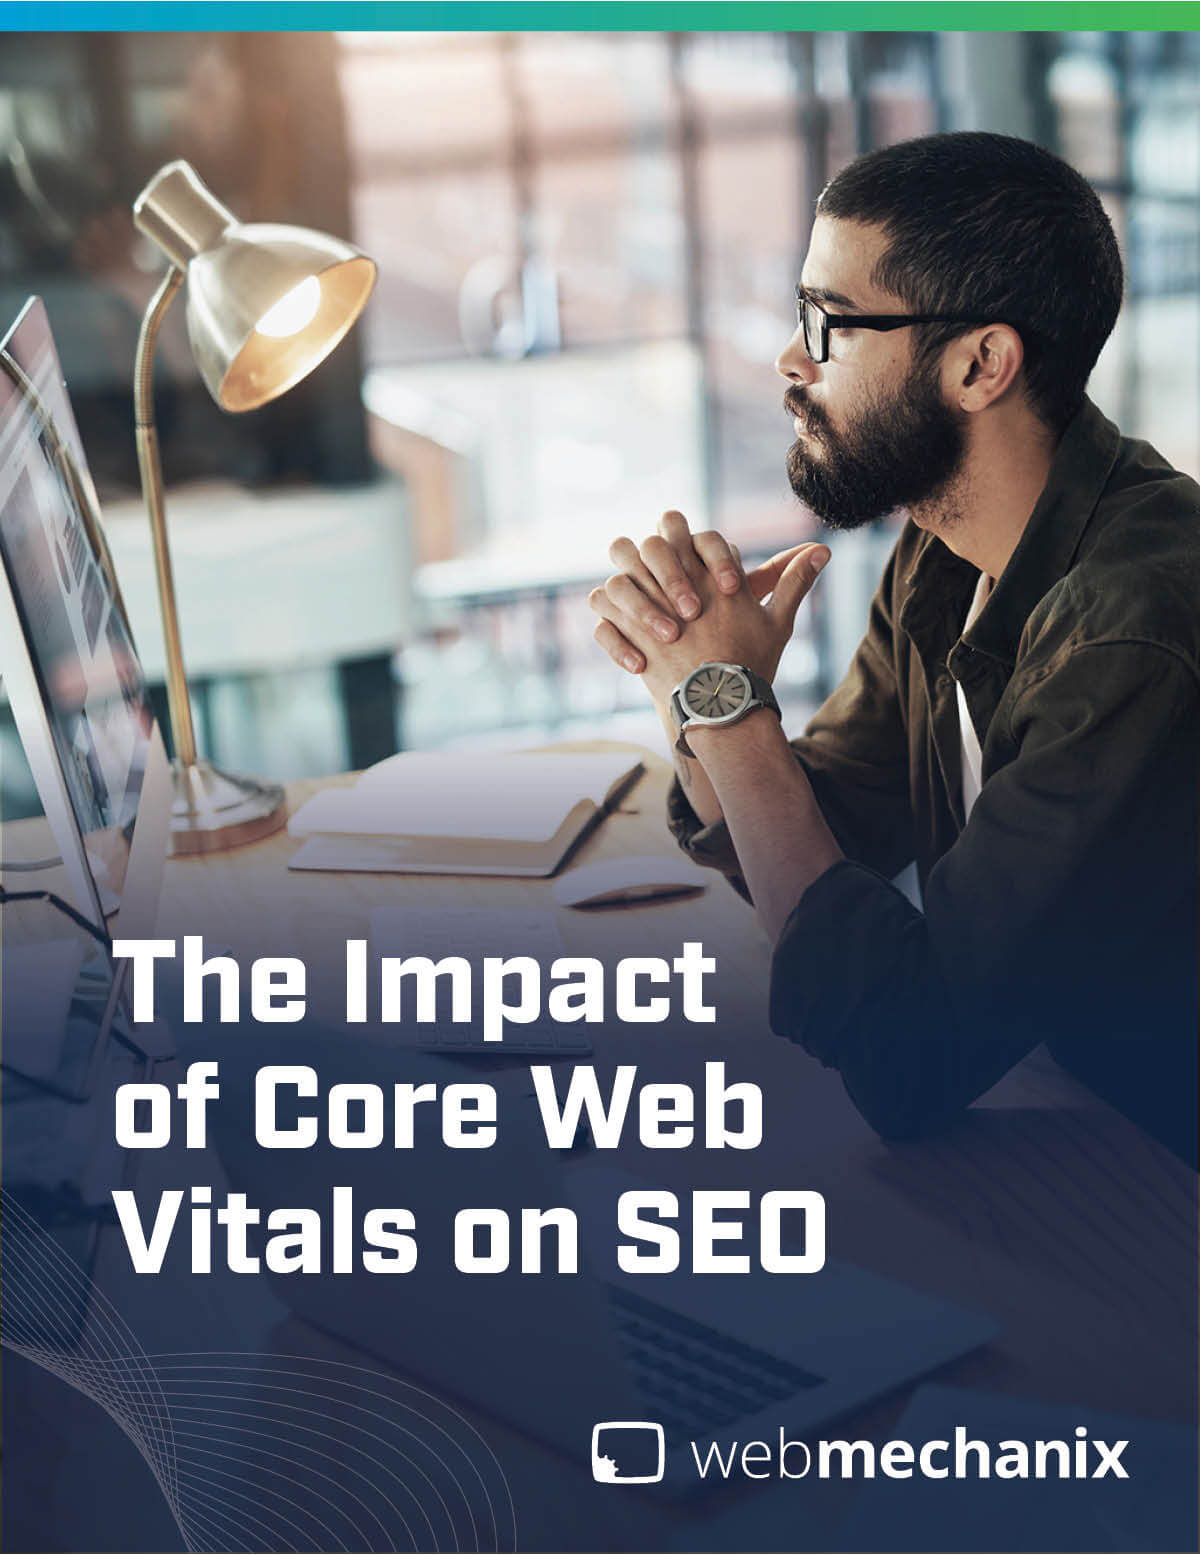 The Impact of Core Web Vitals on SEO